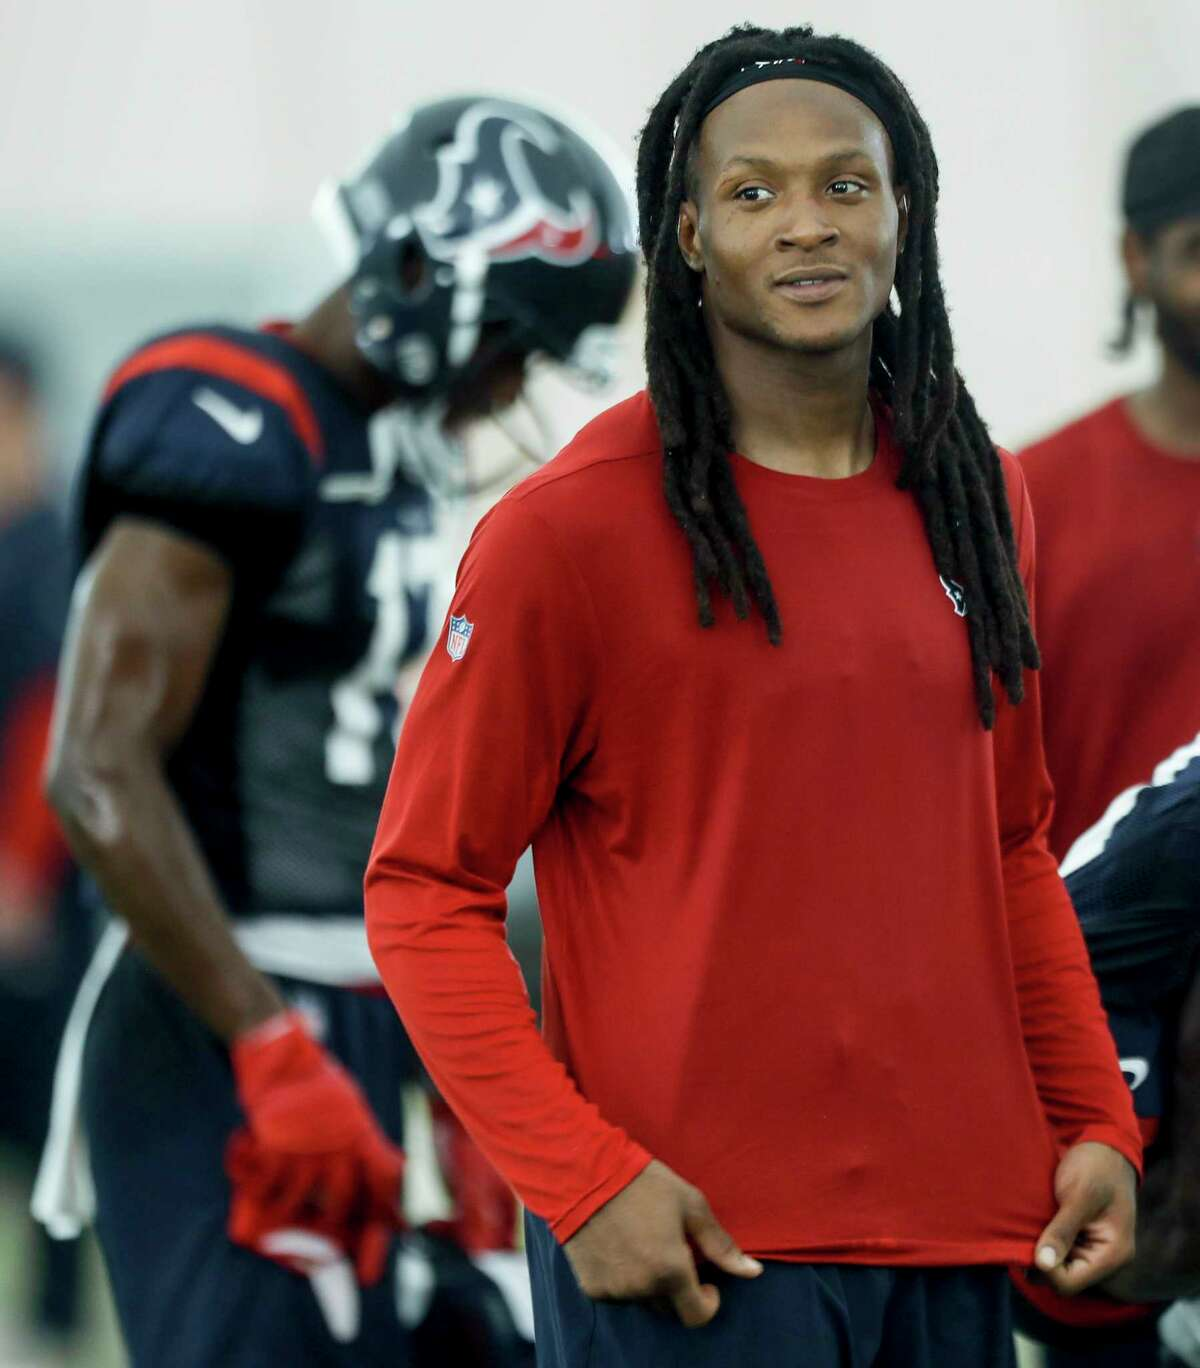 Houston Texans wide receiver DeAndre Hopkins leaves the practice field at the end of the day's workout during training camp at the Methodist Training Center on Wednesday, Aug. 22, 2018, in Houston.